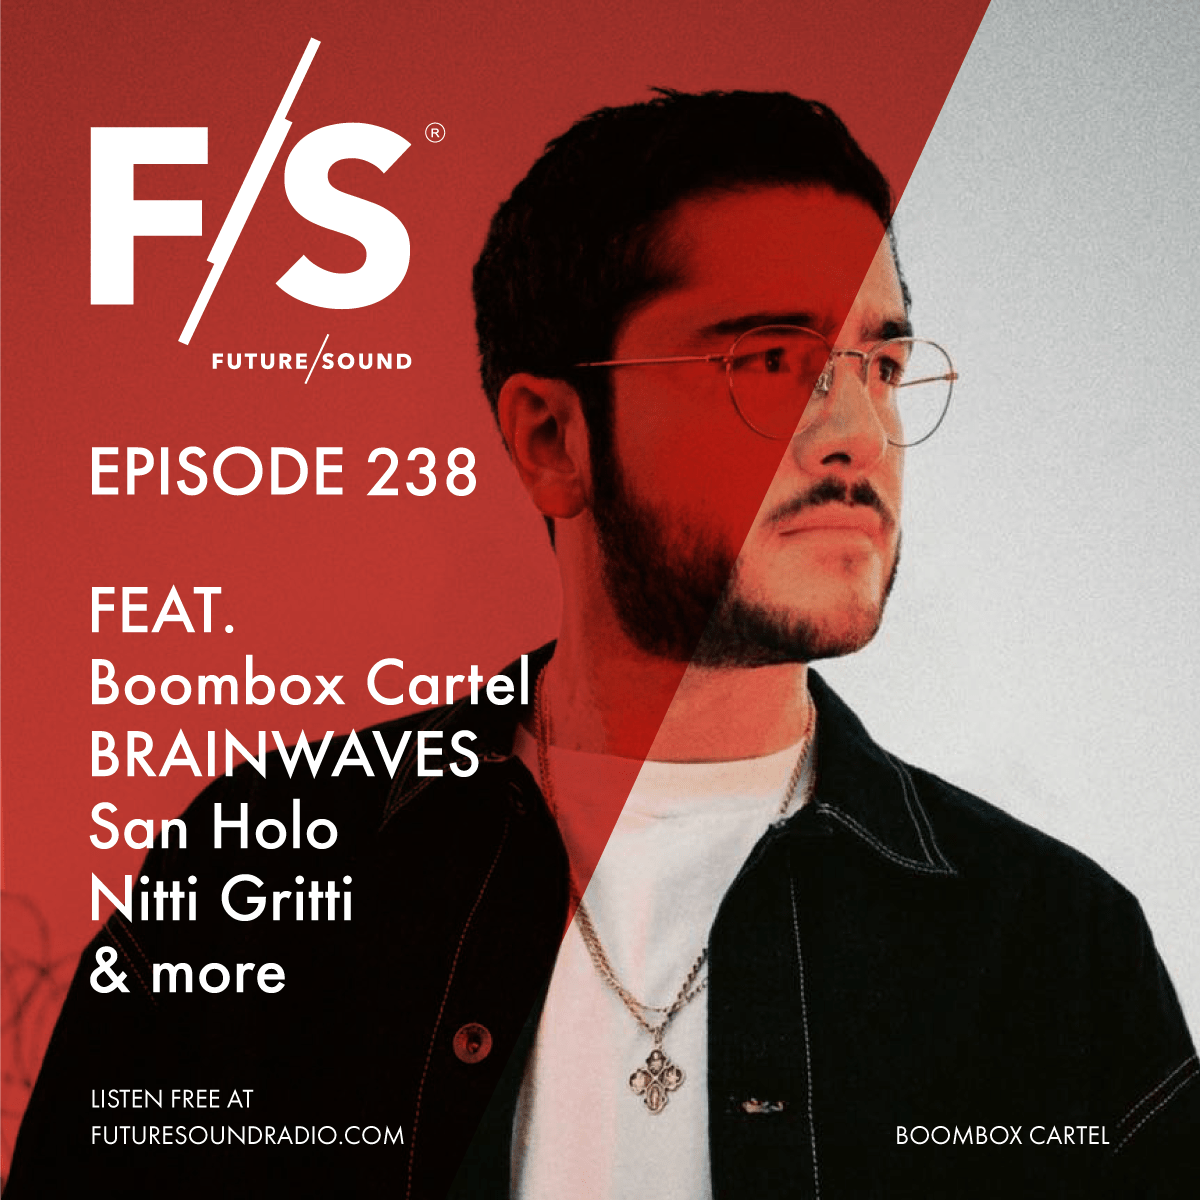 Future/Sound with CUSCINO - Episode 238 feat. Boombox Cartel, BRAINWAVES, San Holo, Nitti Gritti and more | Trap, FutureBass, Dubstep, EDM and more